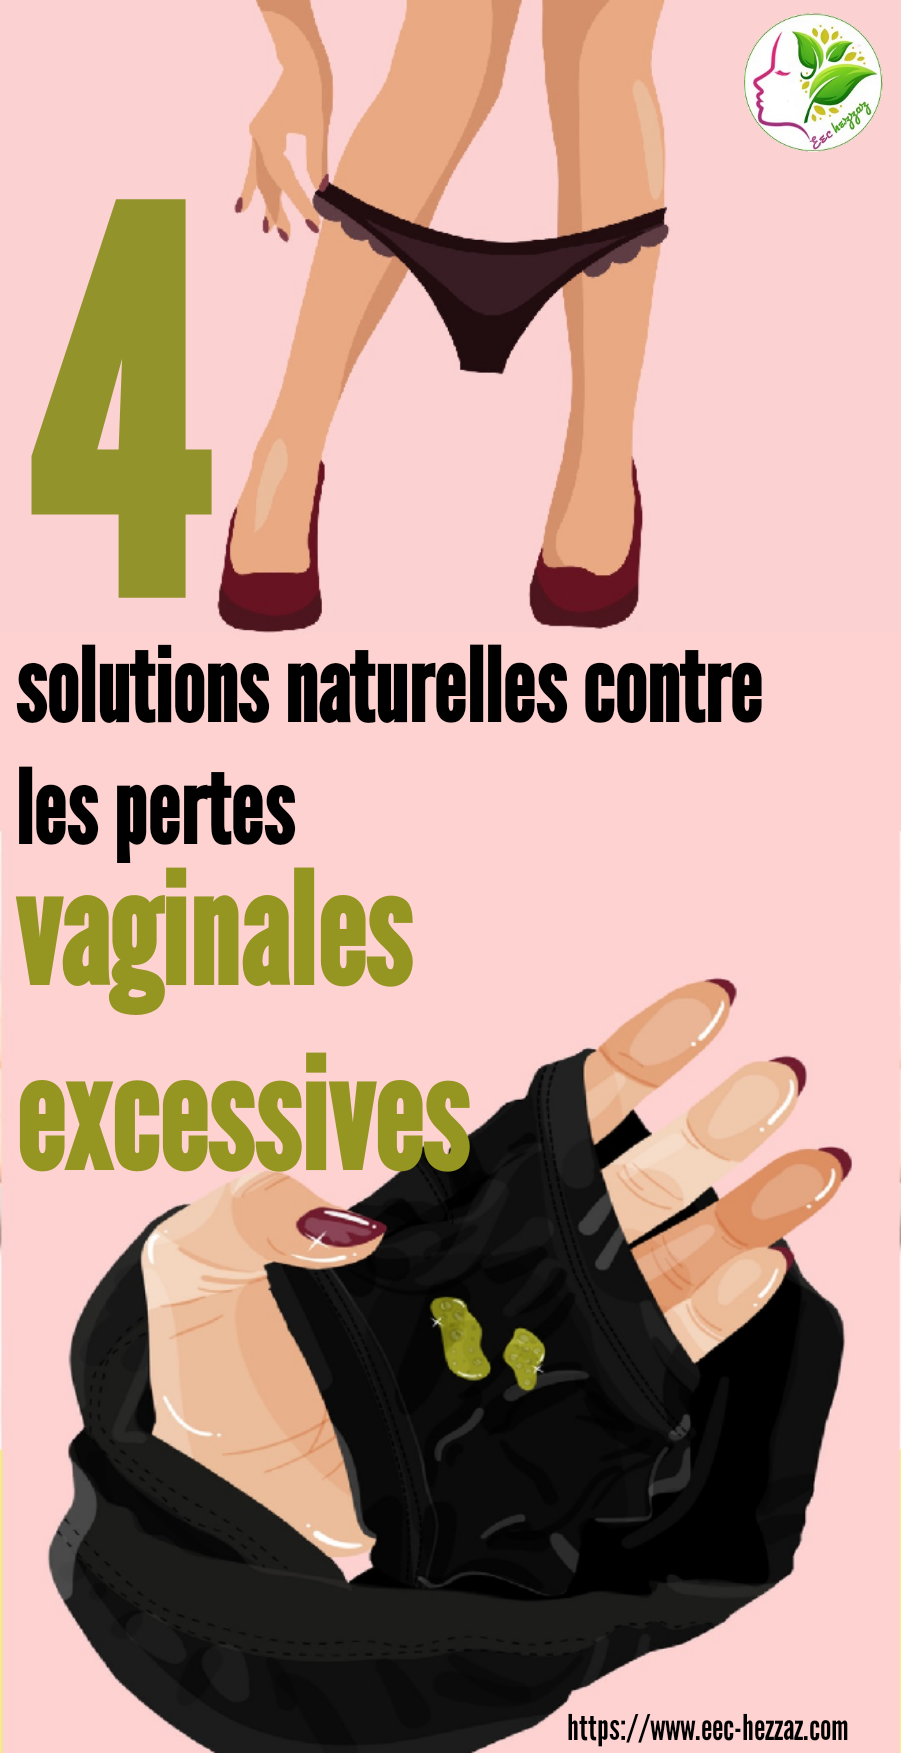 4 solutions naturelles contre les pertes vaginales excessives